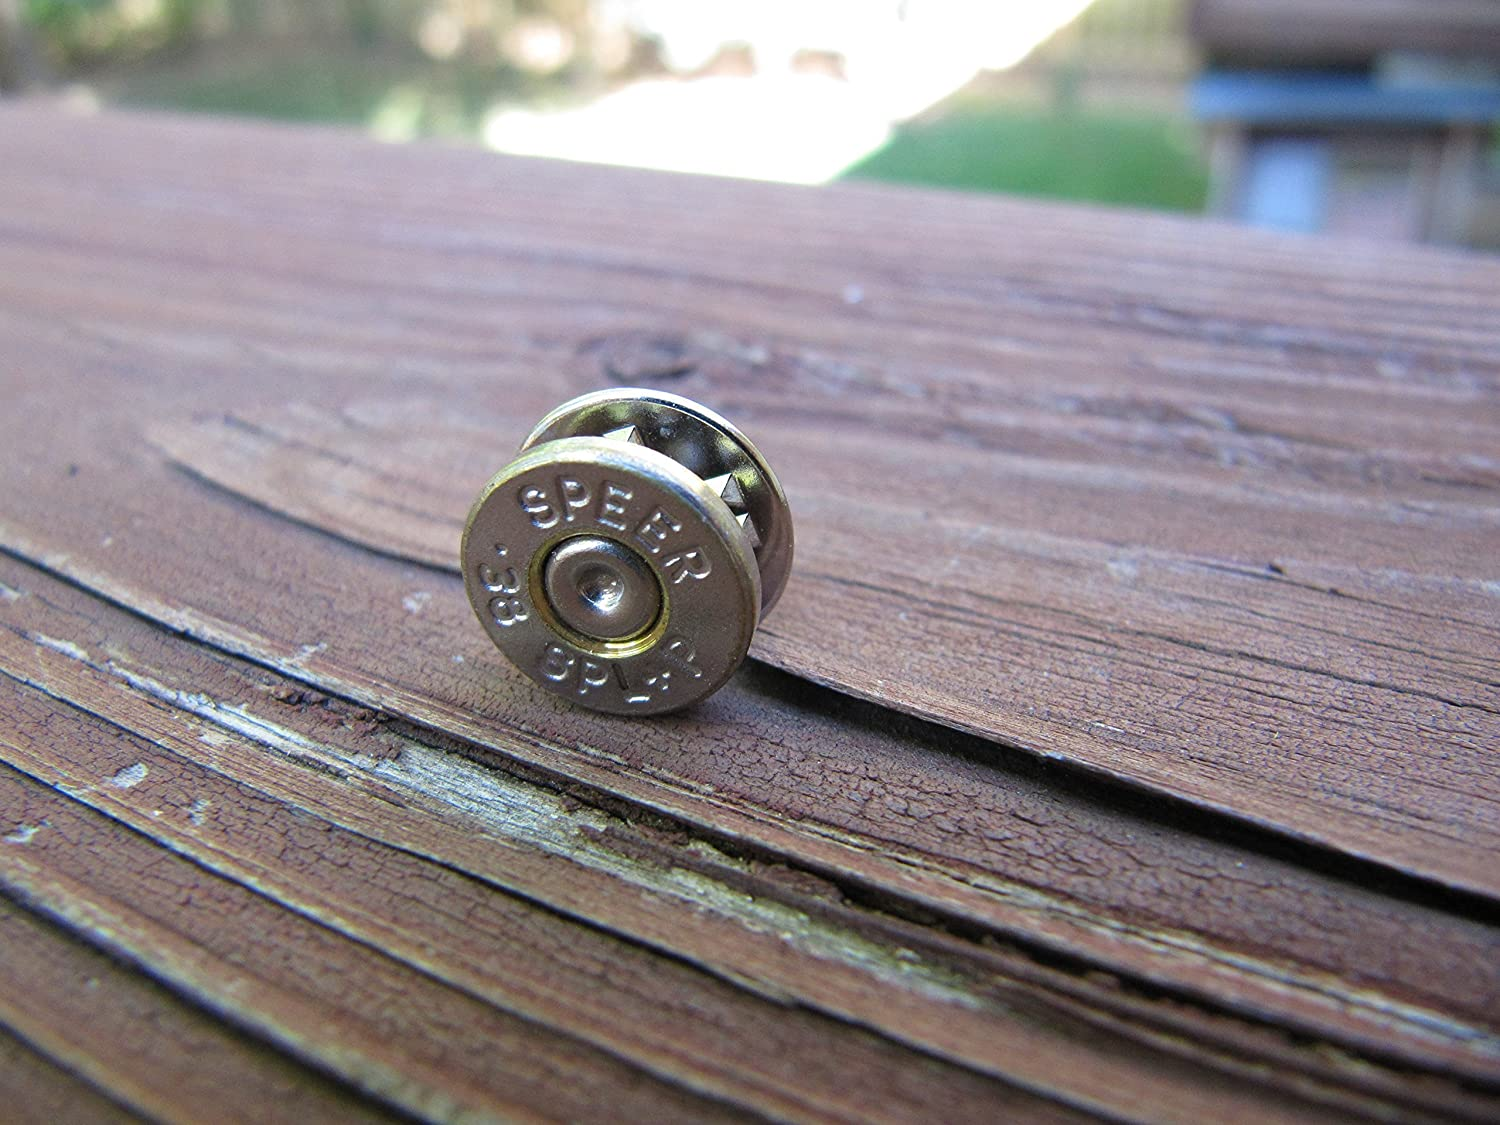 Bullet Tie Tack -Hat Tack - 38 special Bullet - Small Thin Cut Bullet - Tie Tack Wedding or Groomsman